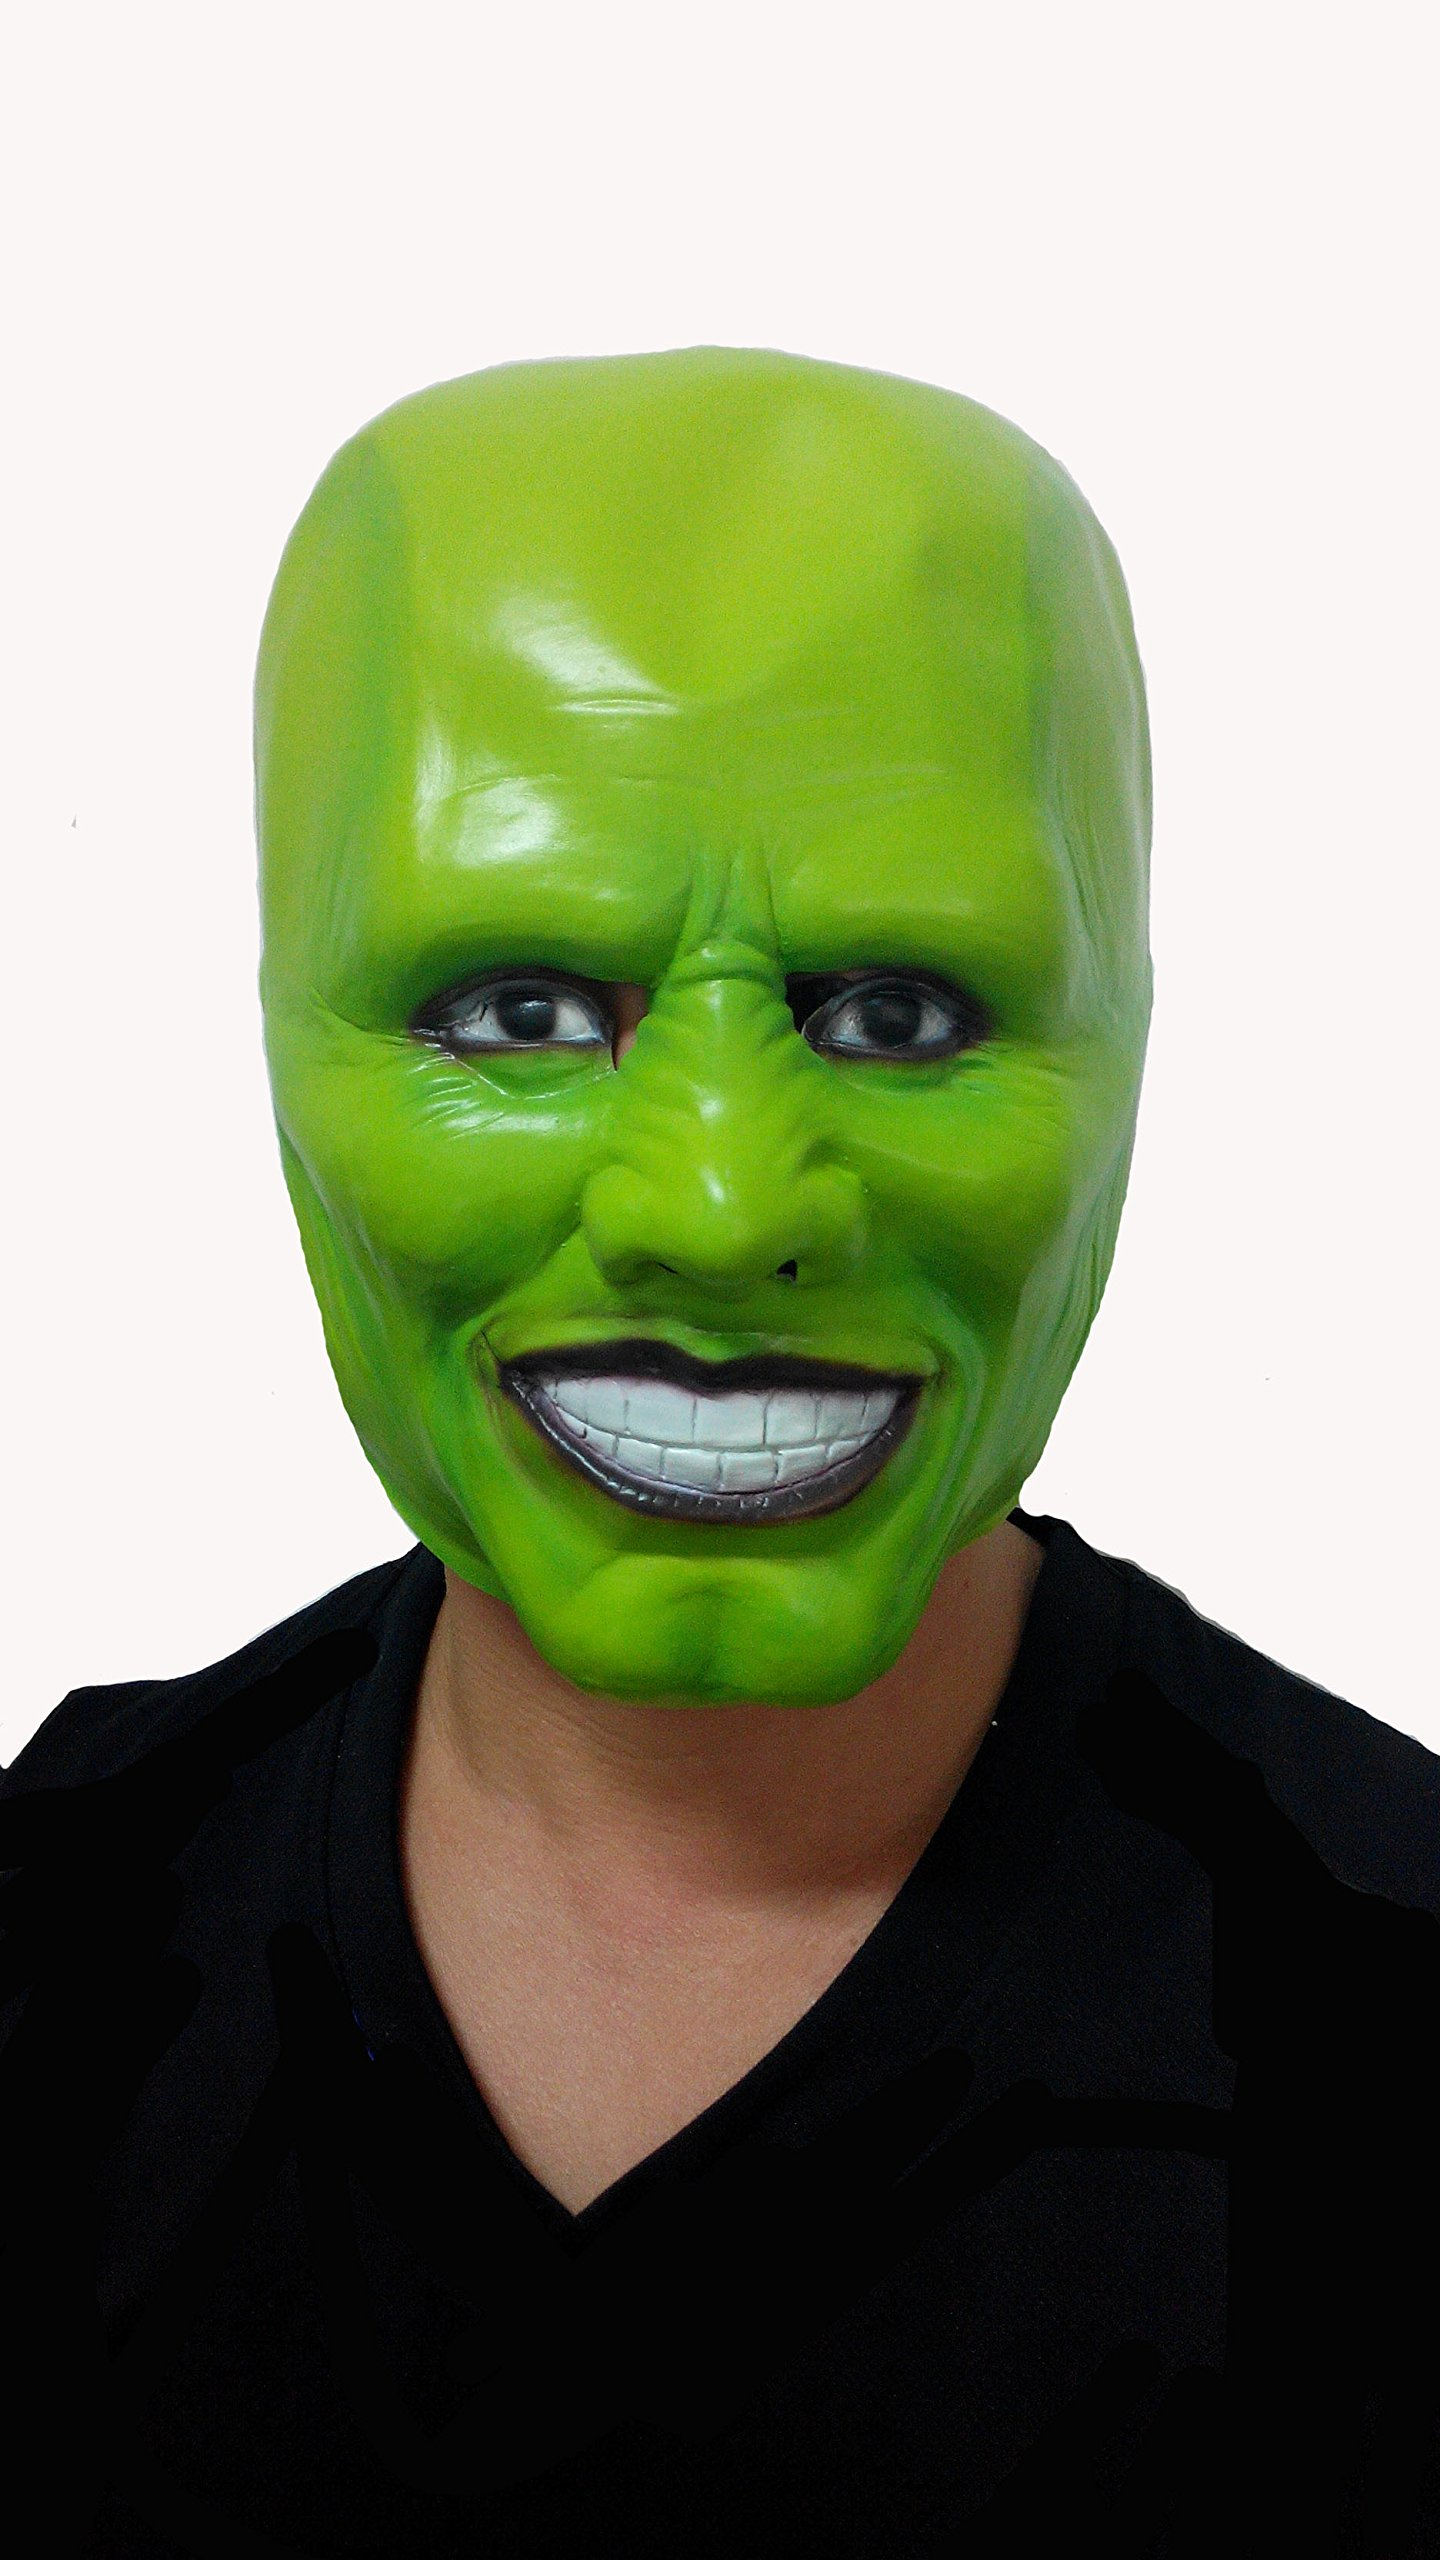 SPOD® Creepy Green Mask Latex Mask for Costume Party